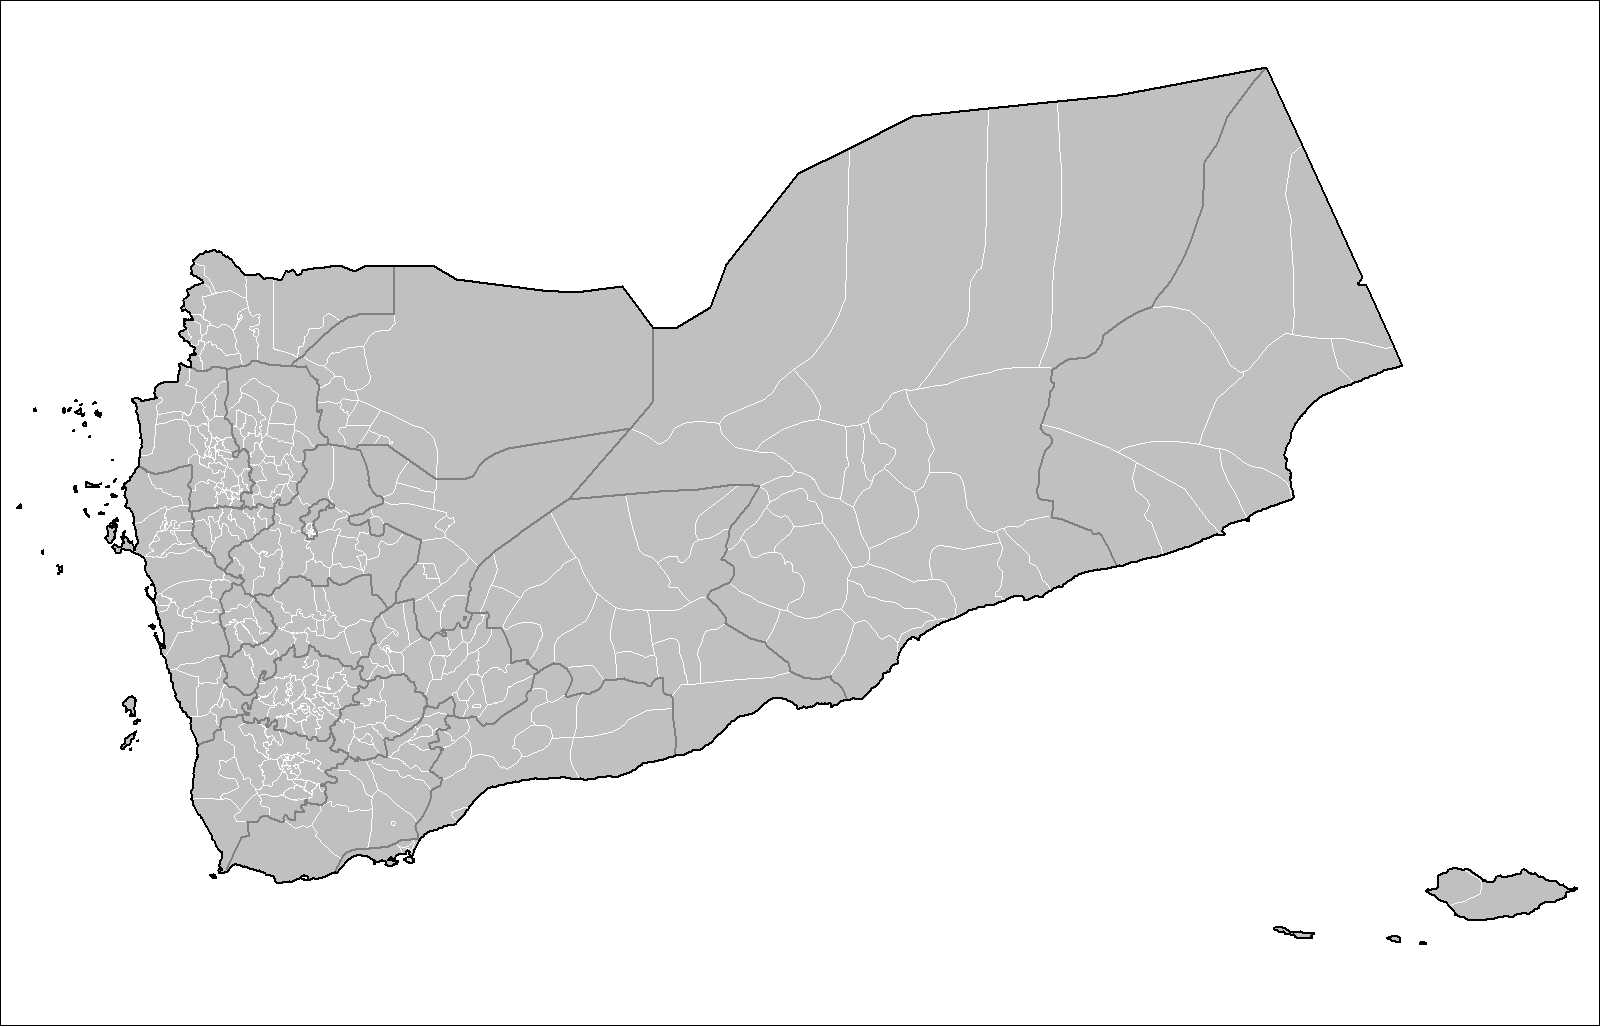 FileYemen districtspng  Wikimedia Commons